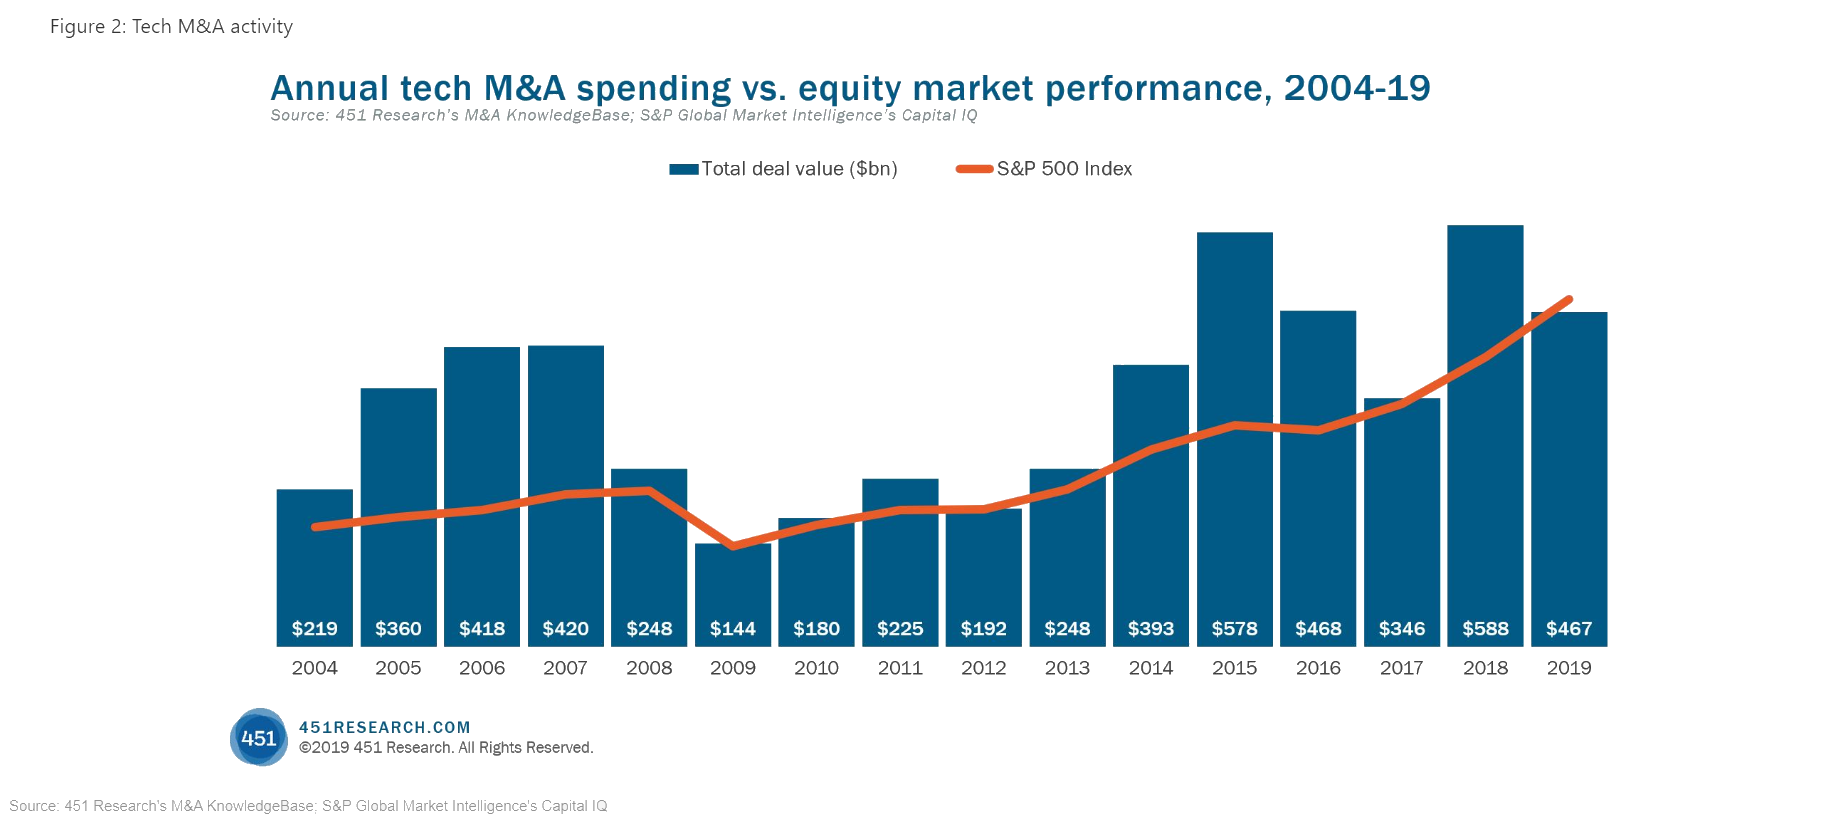 Annual Tech M&A Spending Vs Equity Market Performance 2014-19